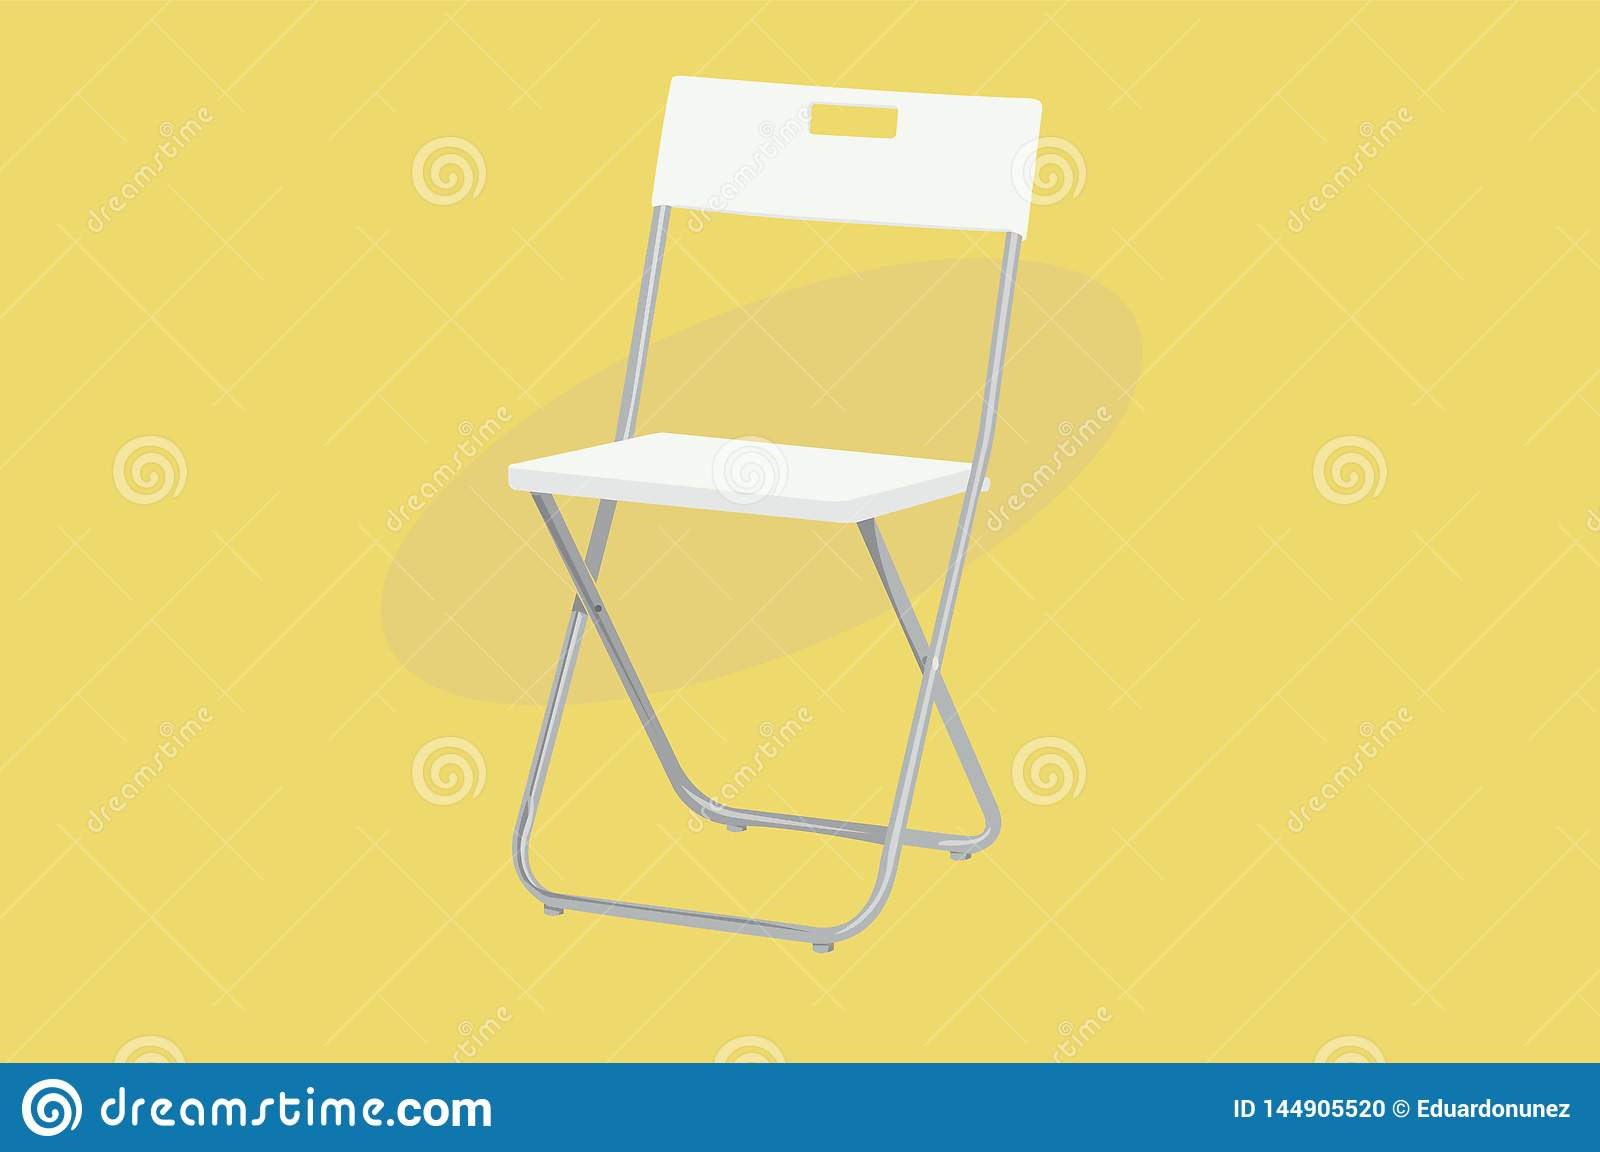 White Folding Chair with Structure of Aluminium. Vector Illustration, Isolated